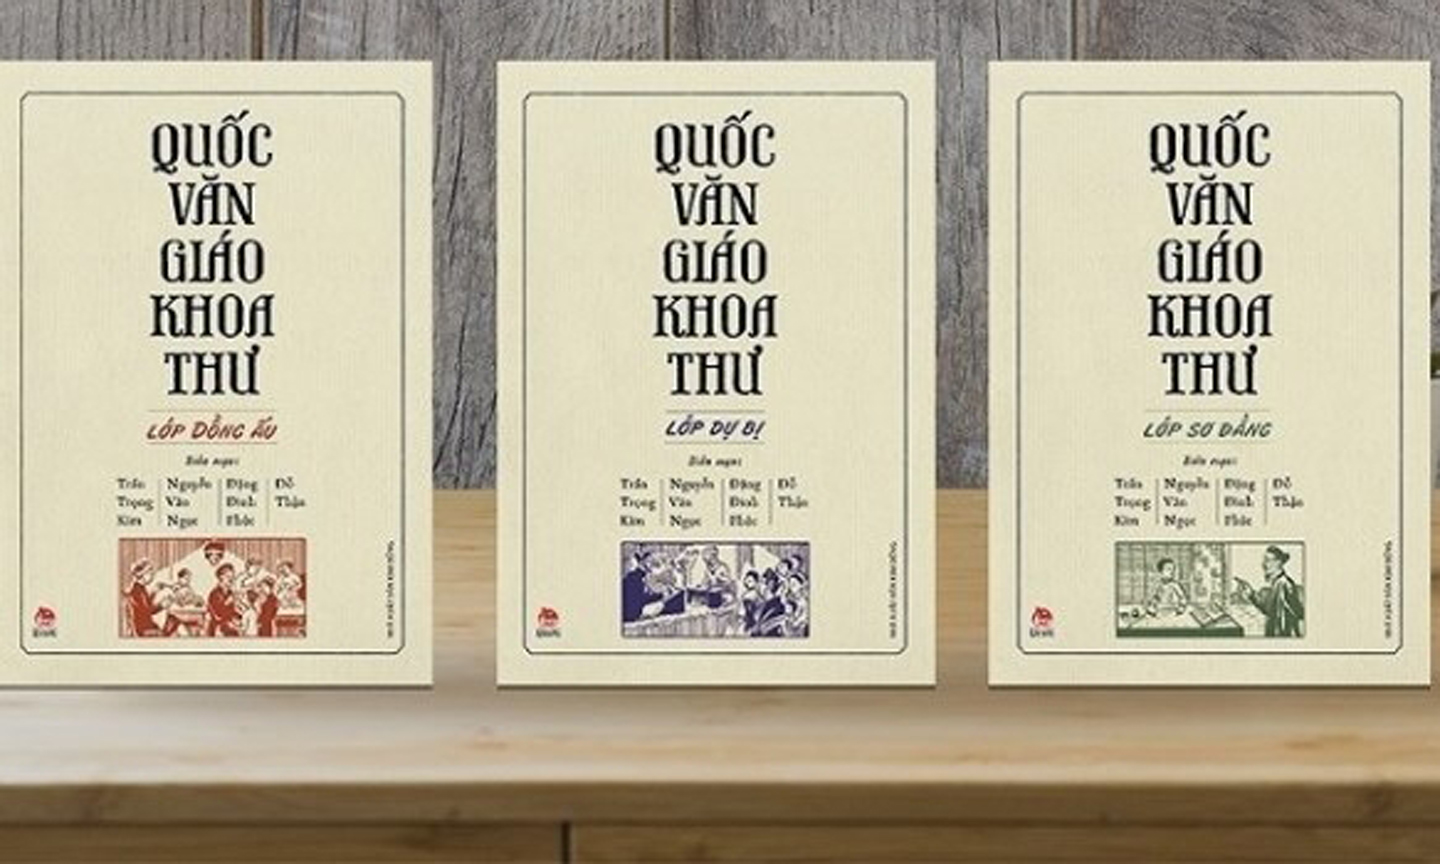 The full set of Quoc Van Giao Khoa Thu – the first primary Vietnamese textbooks, first published in the early years of the 20th century.